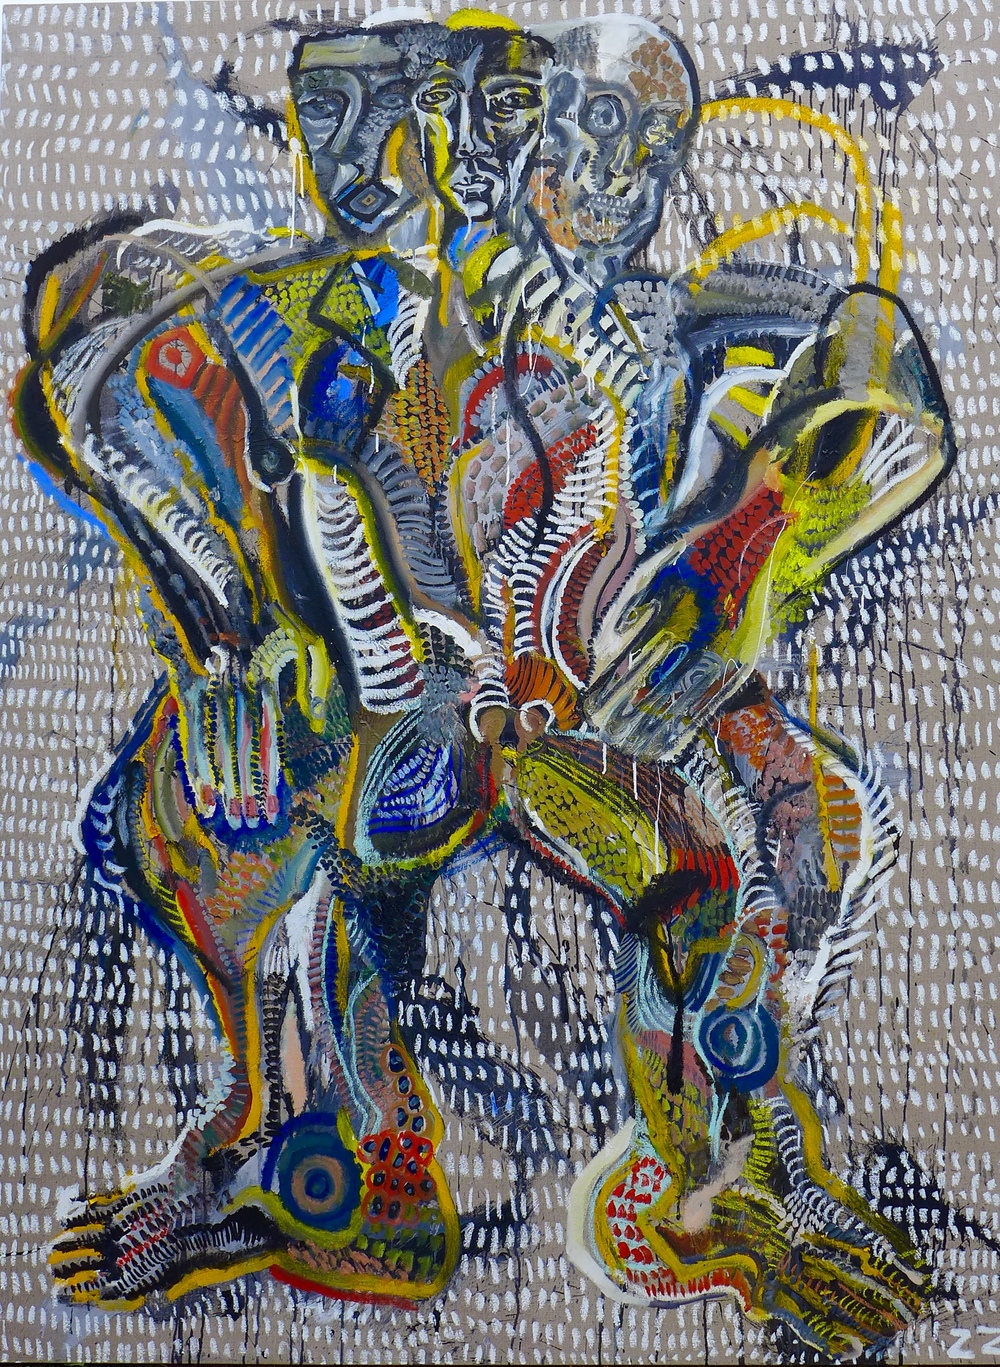 Zio Ziegler The Fertility God 72 x 96 x 1.5 inches Oil and House Paint on Canvas SOLD